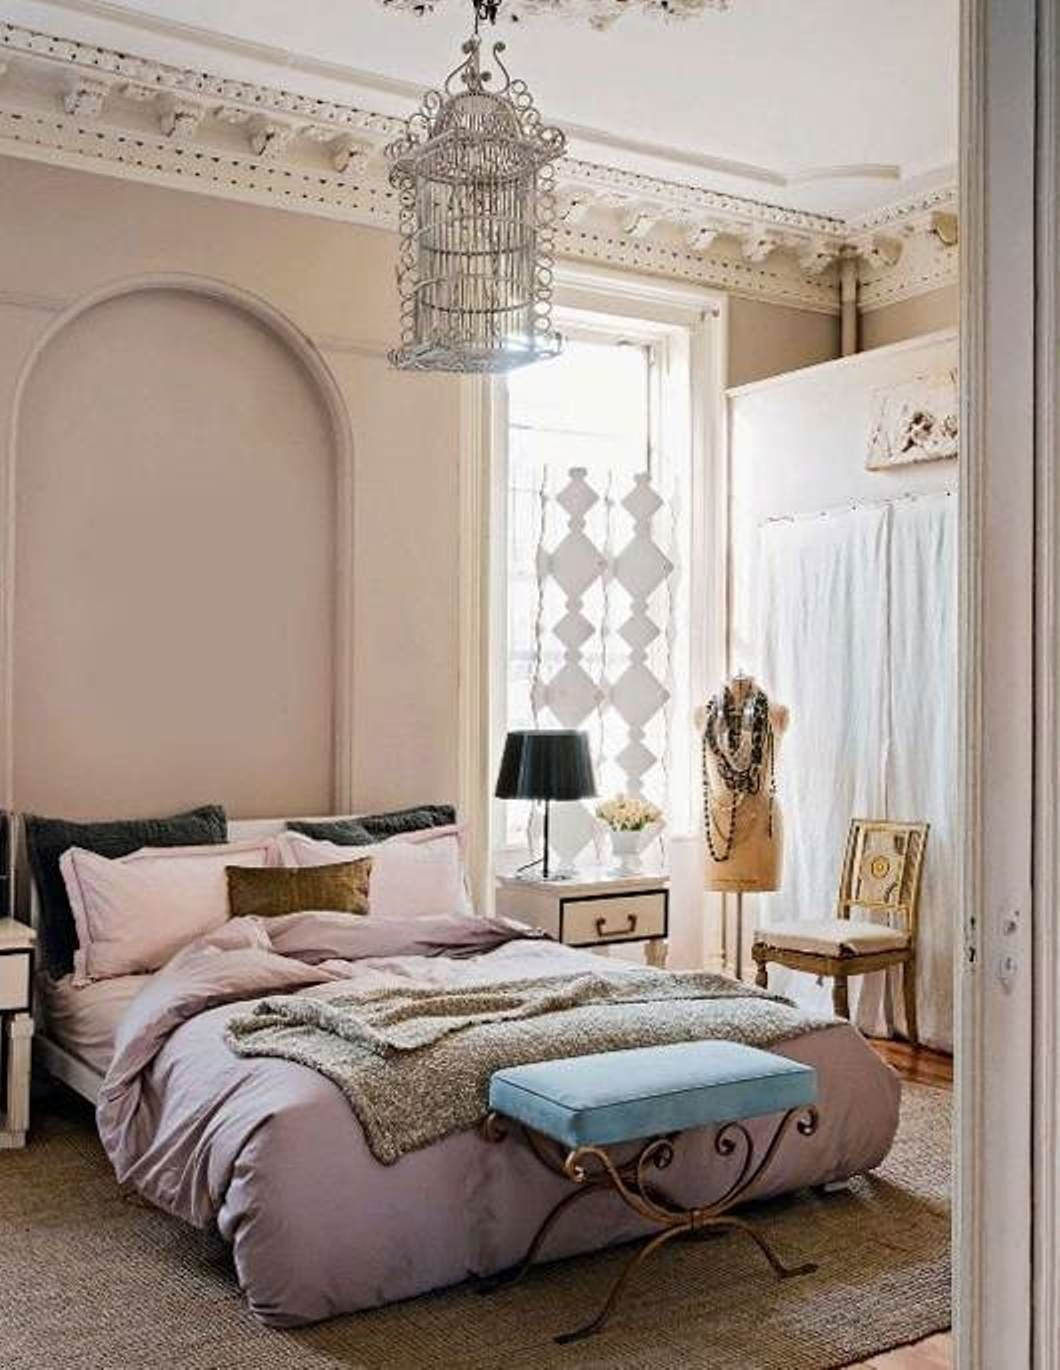 Bedroom paint ideas for women - Perfect Bedroom Decorating Ideas For Women